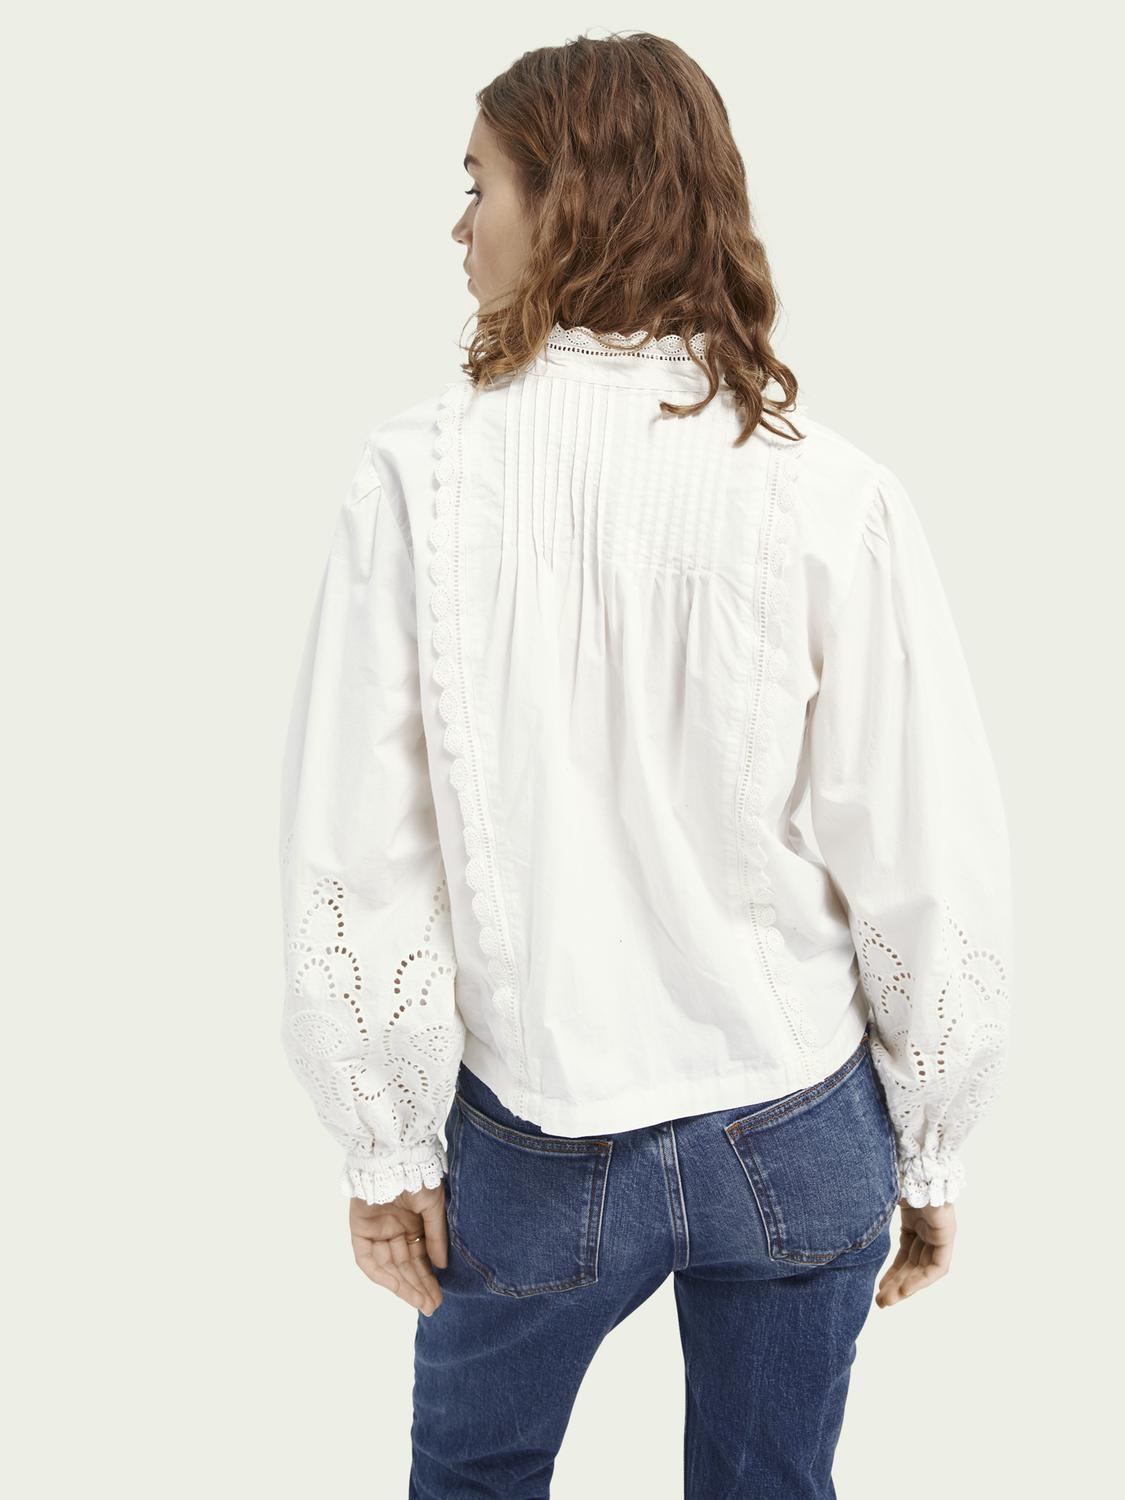 Broderie anglaise detail top 2